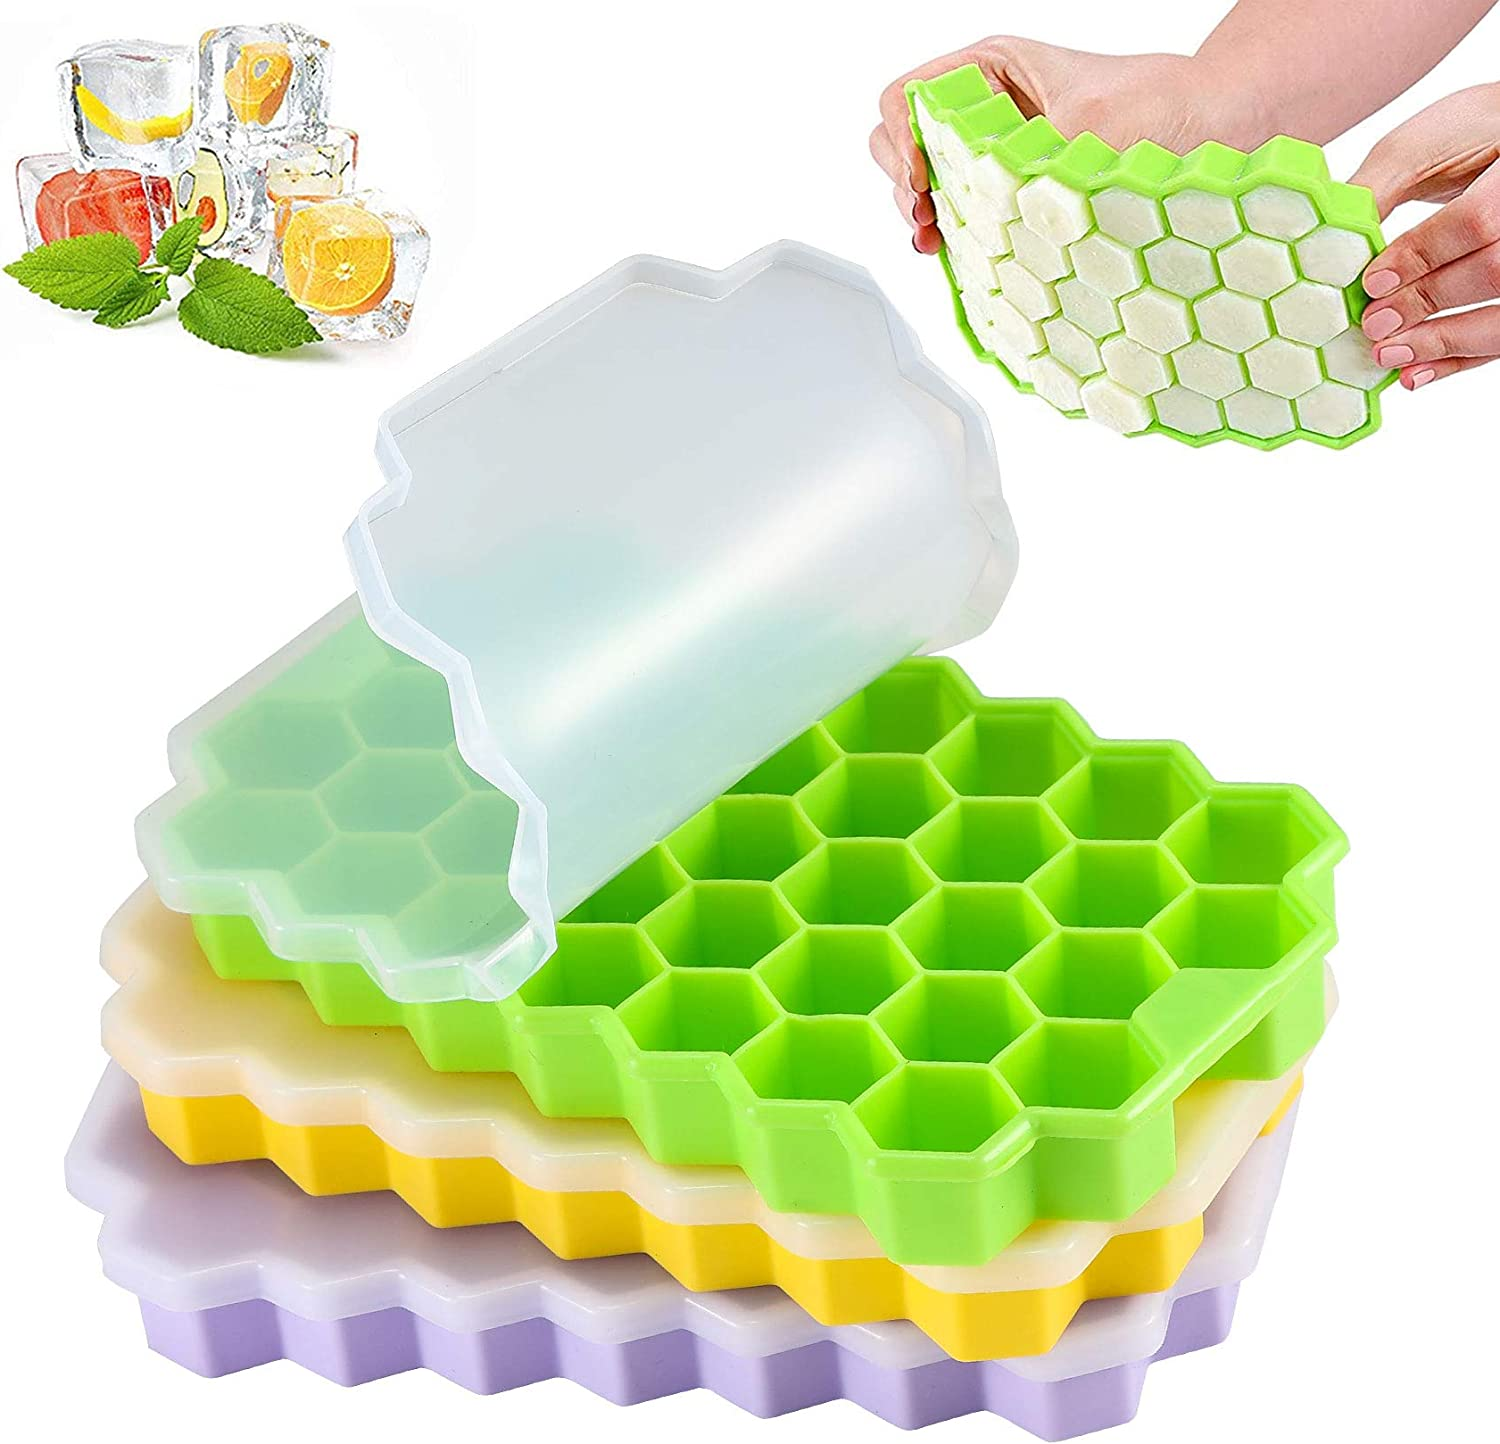 LessMo 111 Cubes Ice Cube Tray, 3 Pack Silicone Ice Cube Freezing Tray with Lids, Easy-Release, Flexible, Stackable, Perfect for Whiskey, Cocktail, Baby Food, Chilled Drinks, Green+ Yellow+ Purple